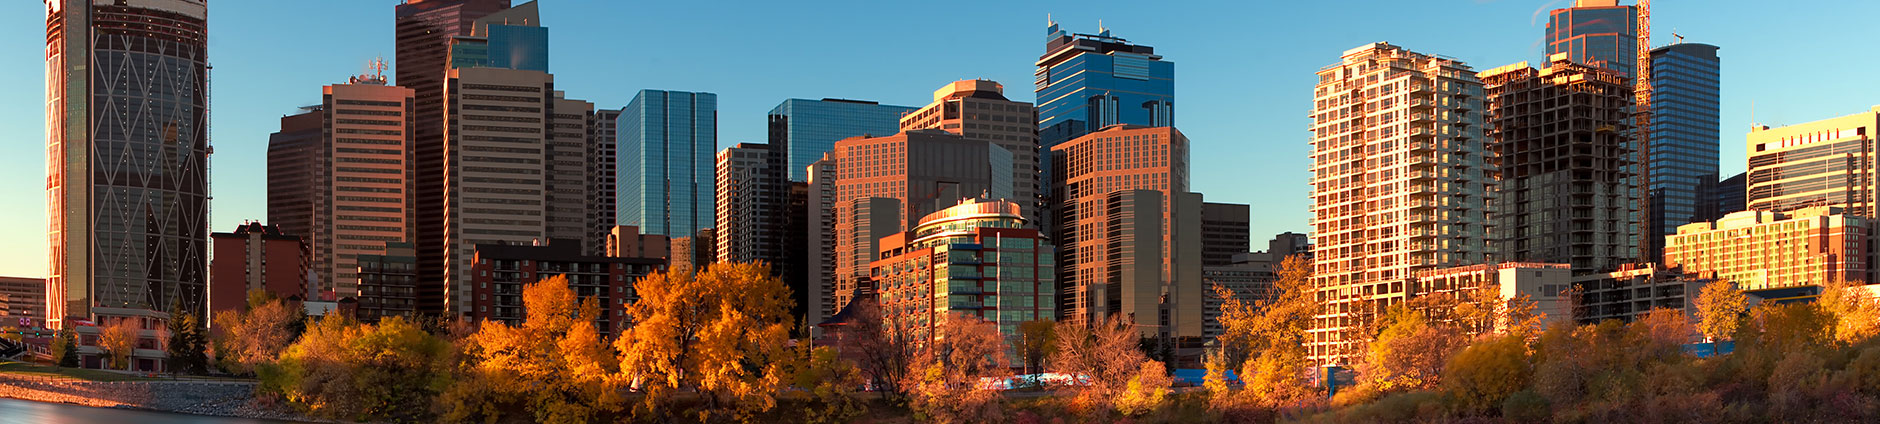 Downtown-Calgary-Sunrise@2x